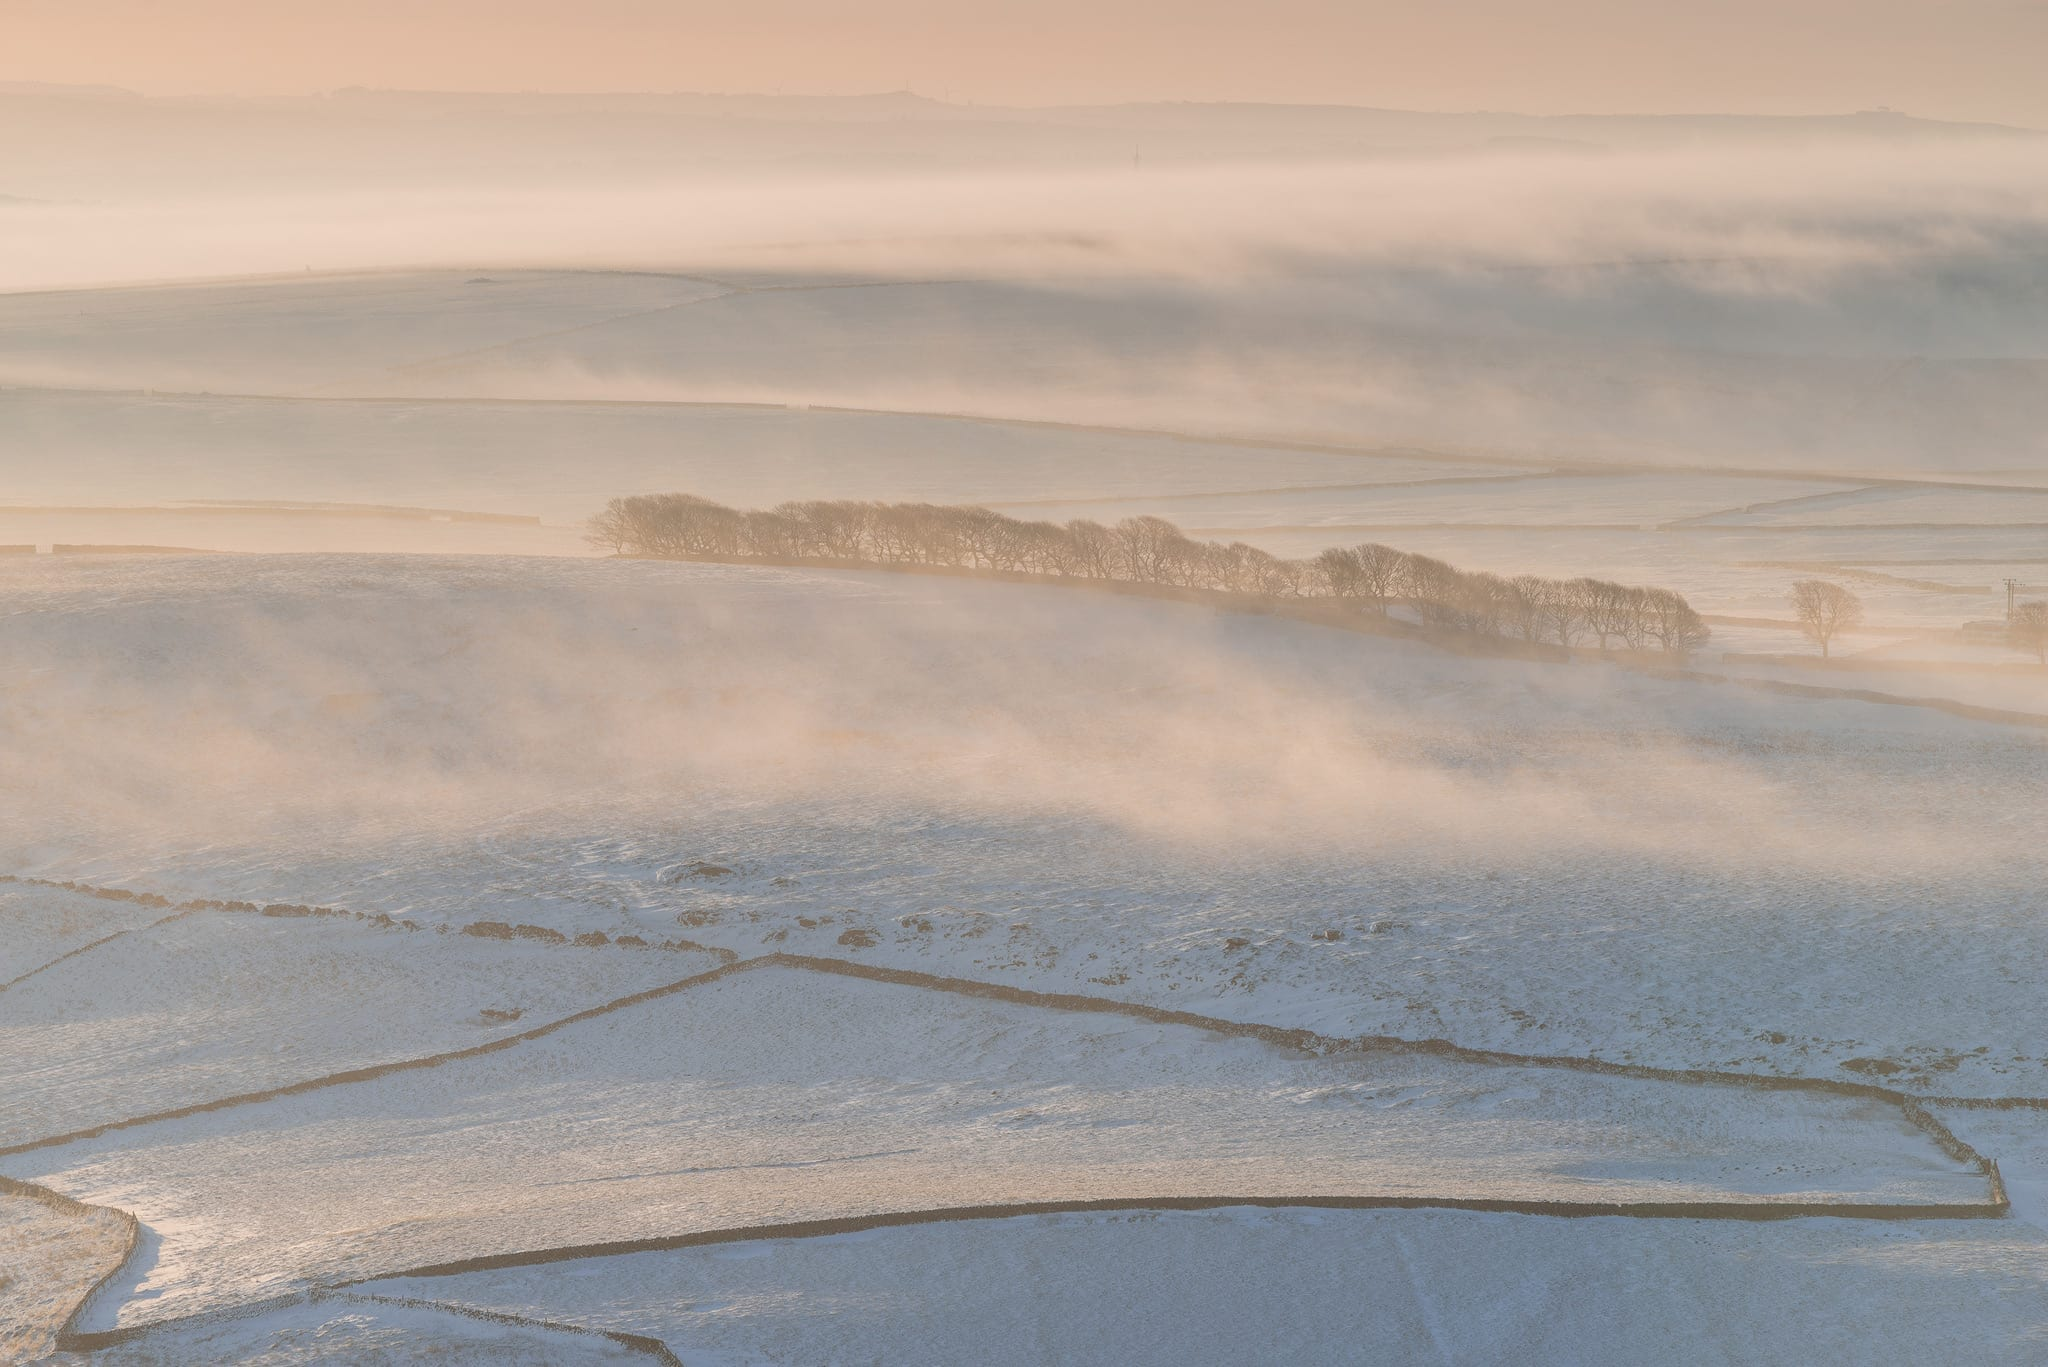 Mam Tor Abstract Shot - Fog flowing over snowy fields - Mam Tor Photography Location Guide